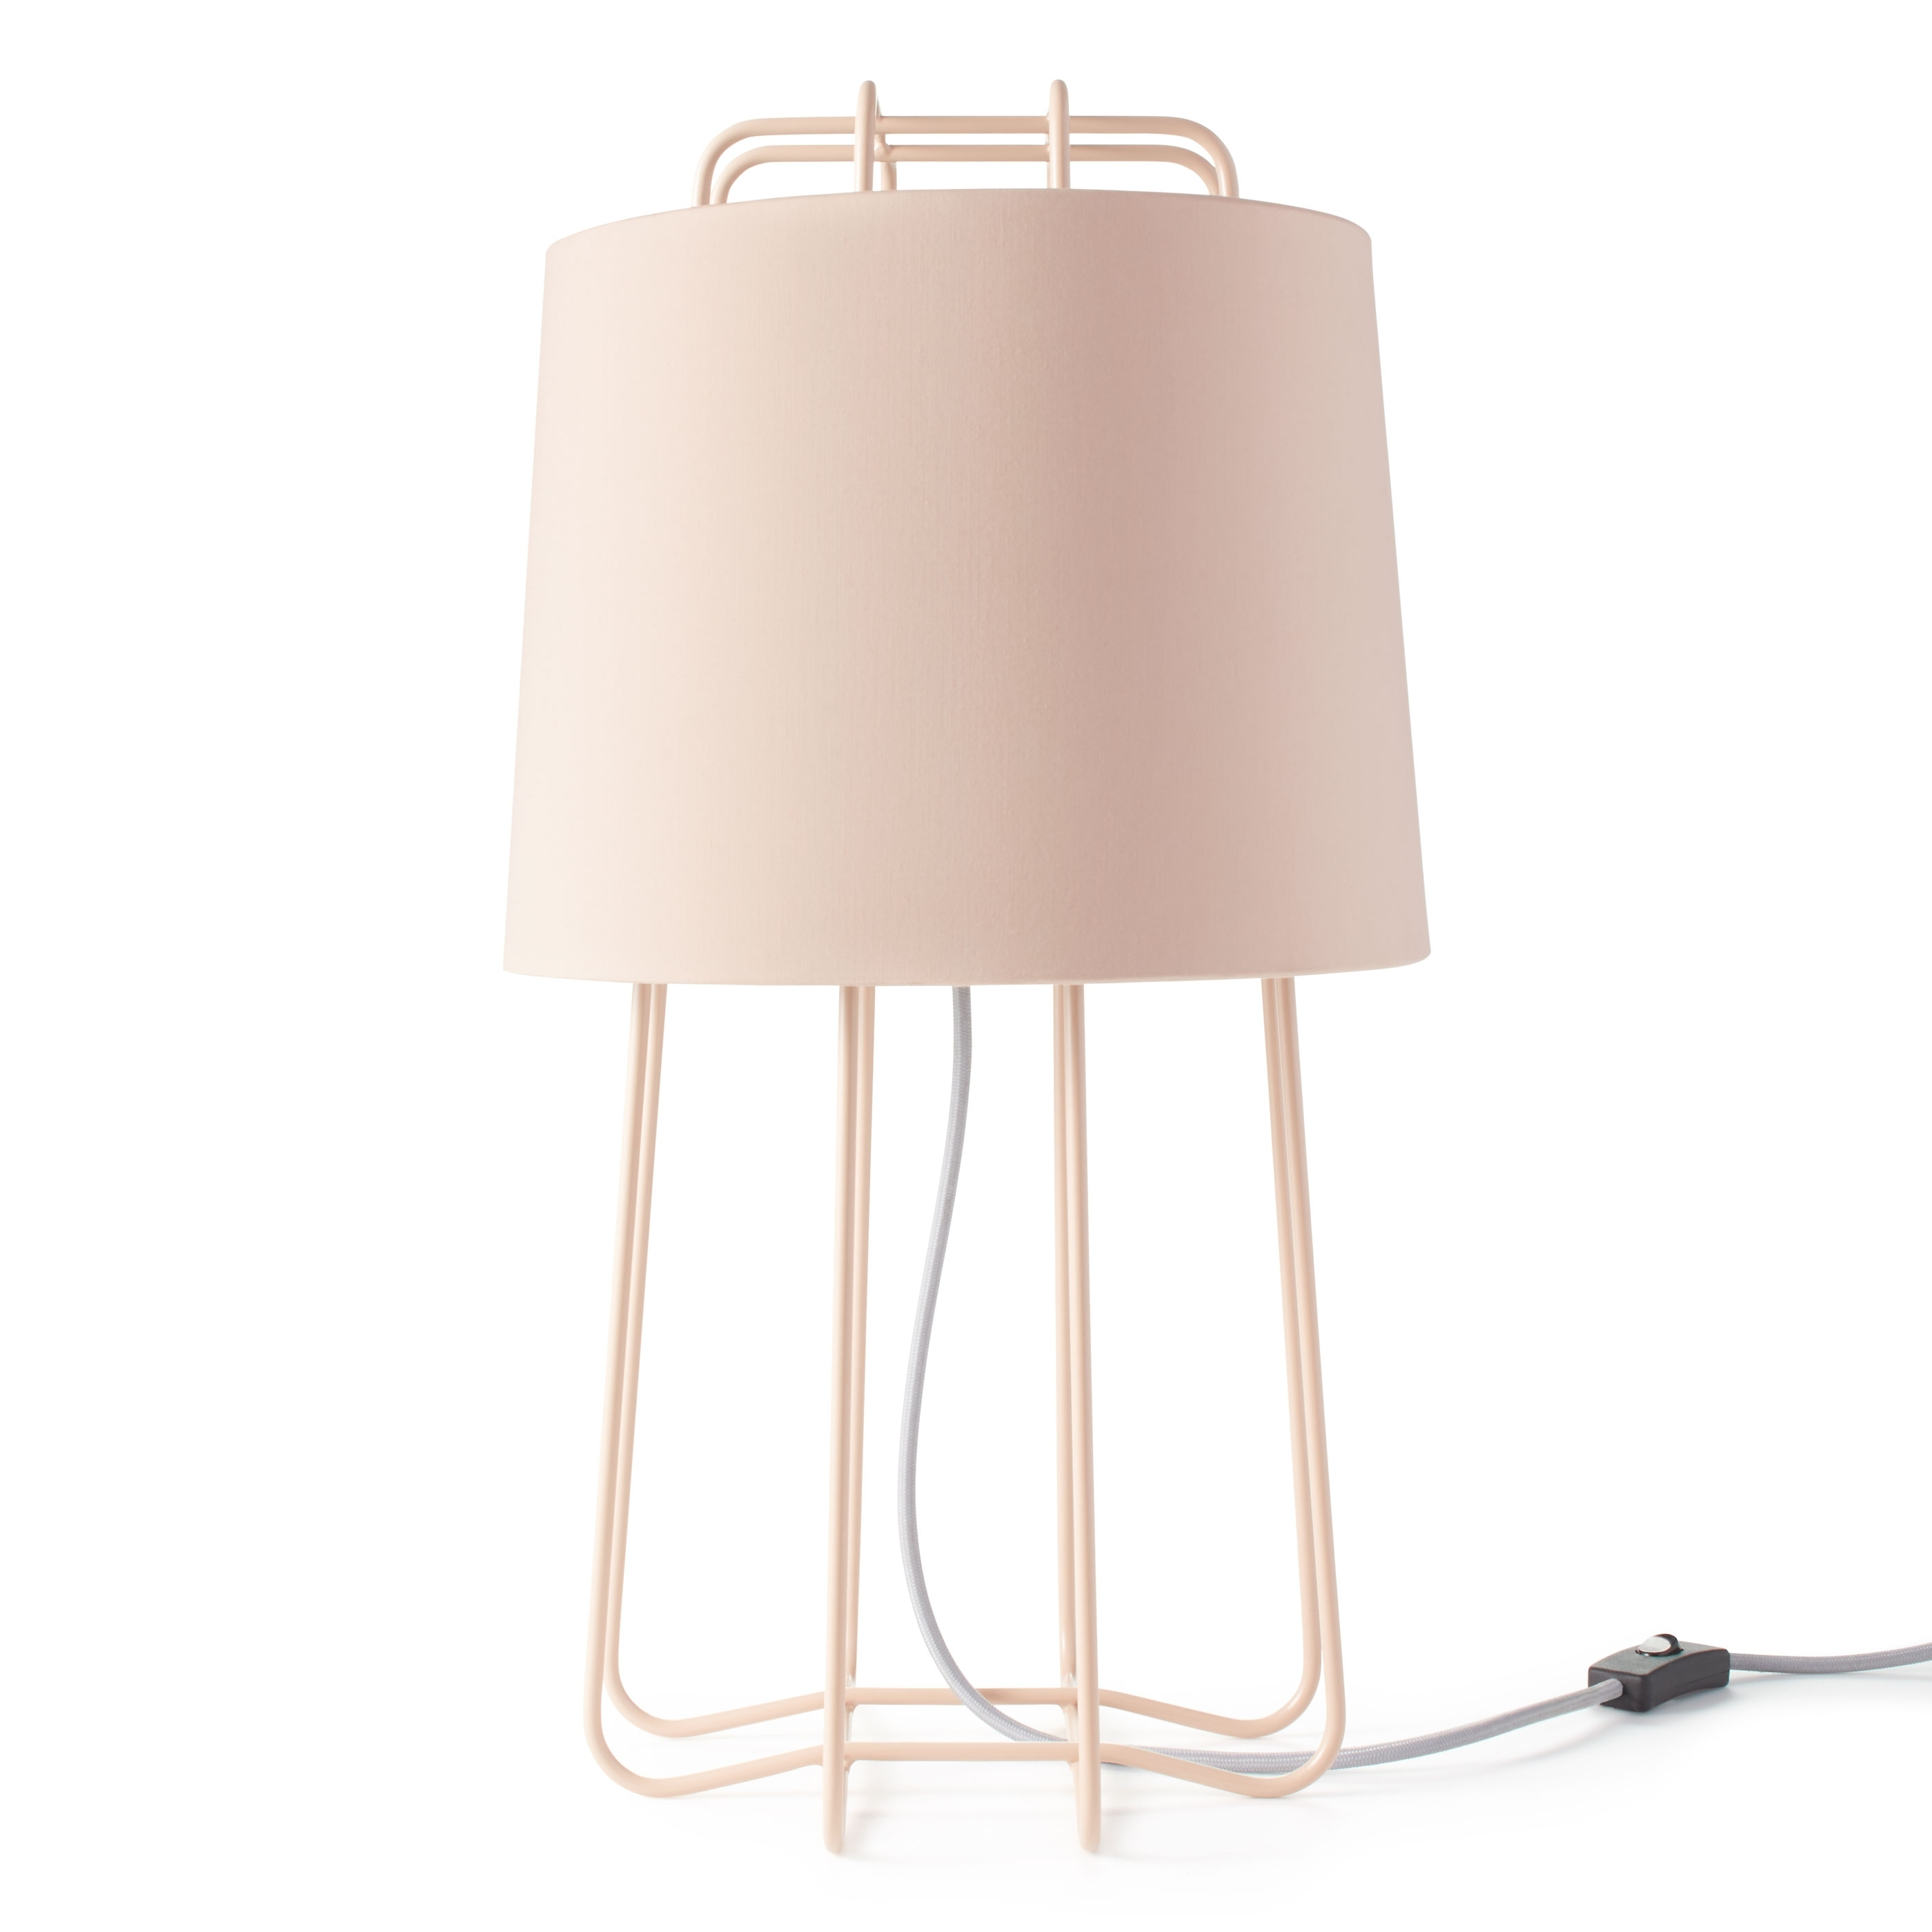 Lamp : Overstock Table Lamps For Bedroom Lamp Shades Uk Sale Mankato Inside 2017 Overstock Living Room Table Lamps (View 12 of 15)